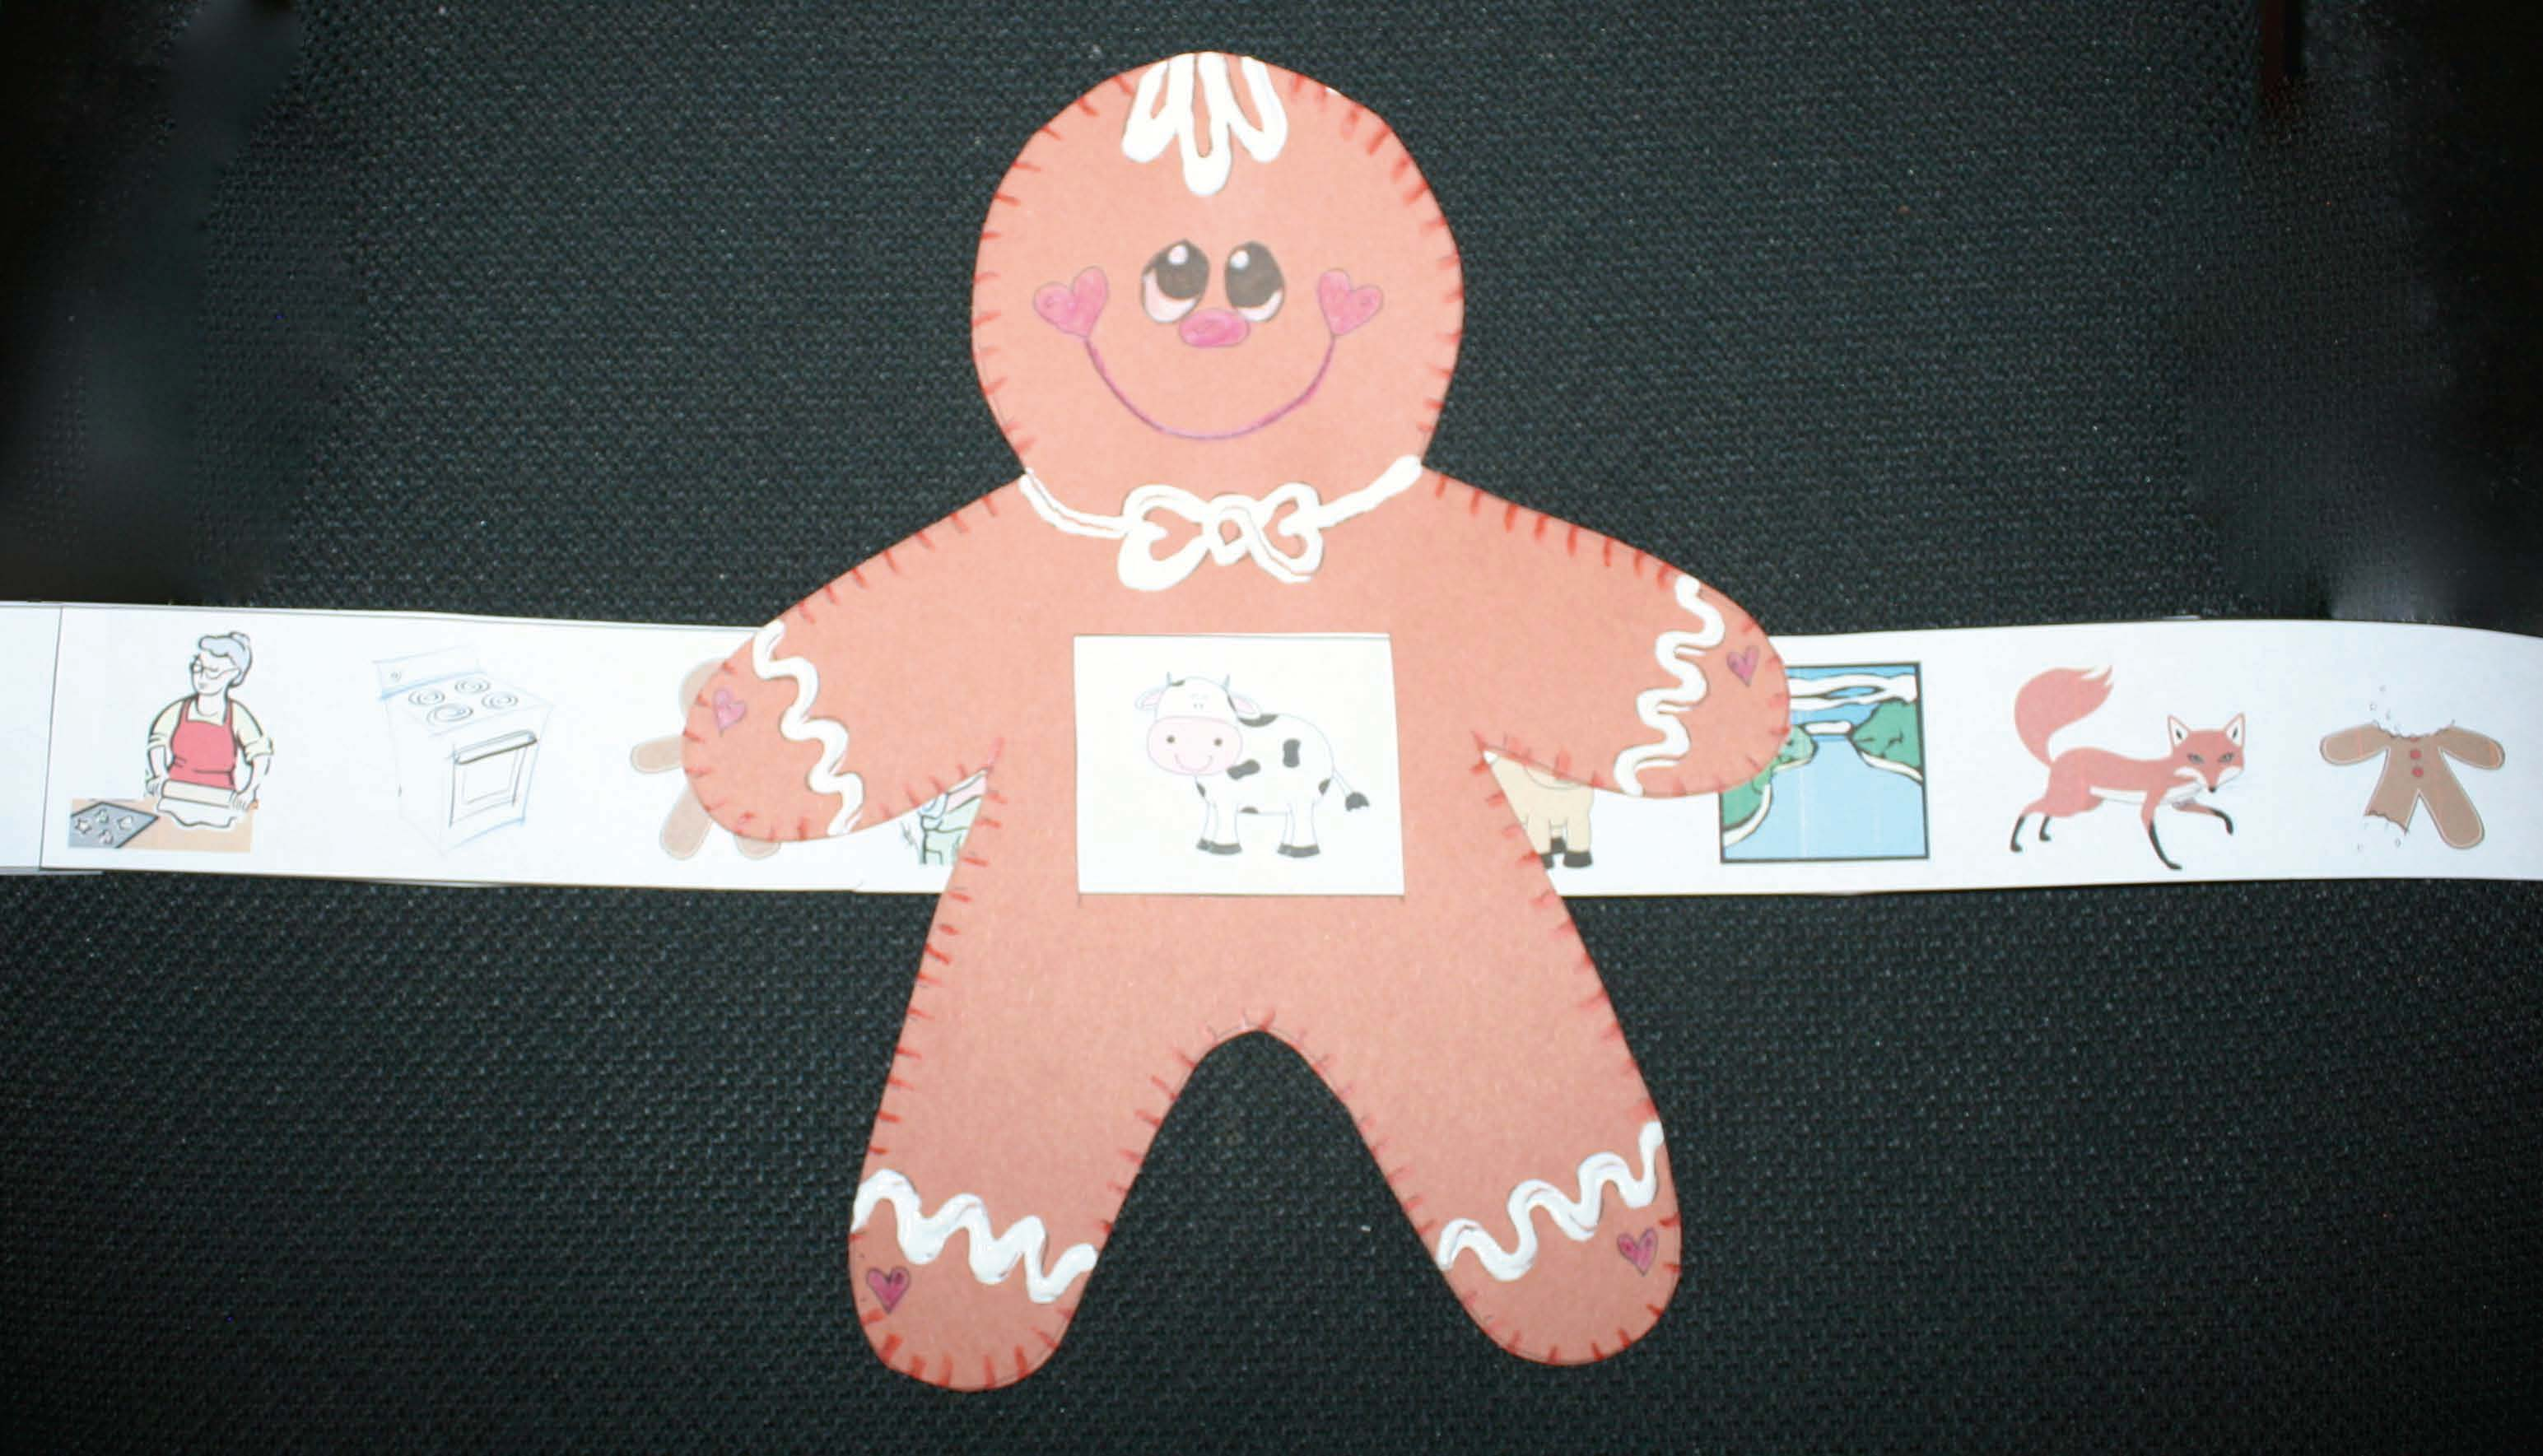 glyphs, free glyphs, gingerbread glyph, alphabet games, I spy a letter worksheets, gingerbread worksheets, gingerbread games, gingerbread venn diagrams, venn diagram templates, activities for the gingerbread man, activities for the gingerbread baby, story elements for the gingerbread man, word cards for the ginberbread man, story cards for the gingerbread man, sequencing cards for the gingerbread man, gingerbread crafts, picture cards for the gingerbread man